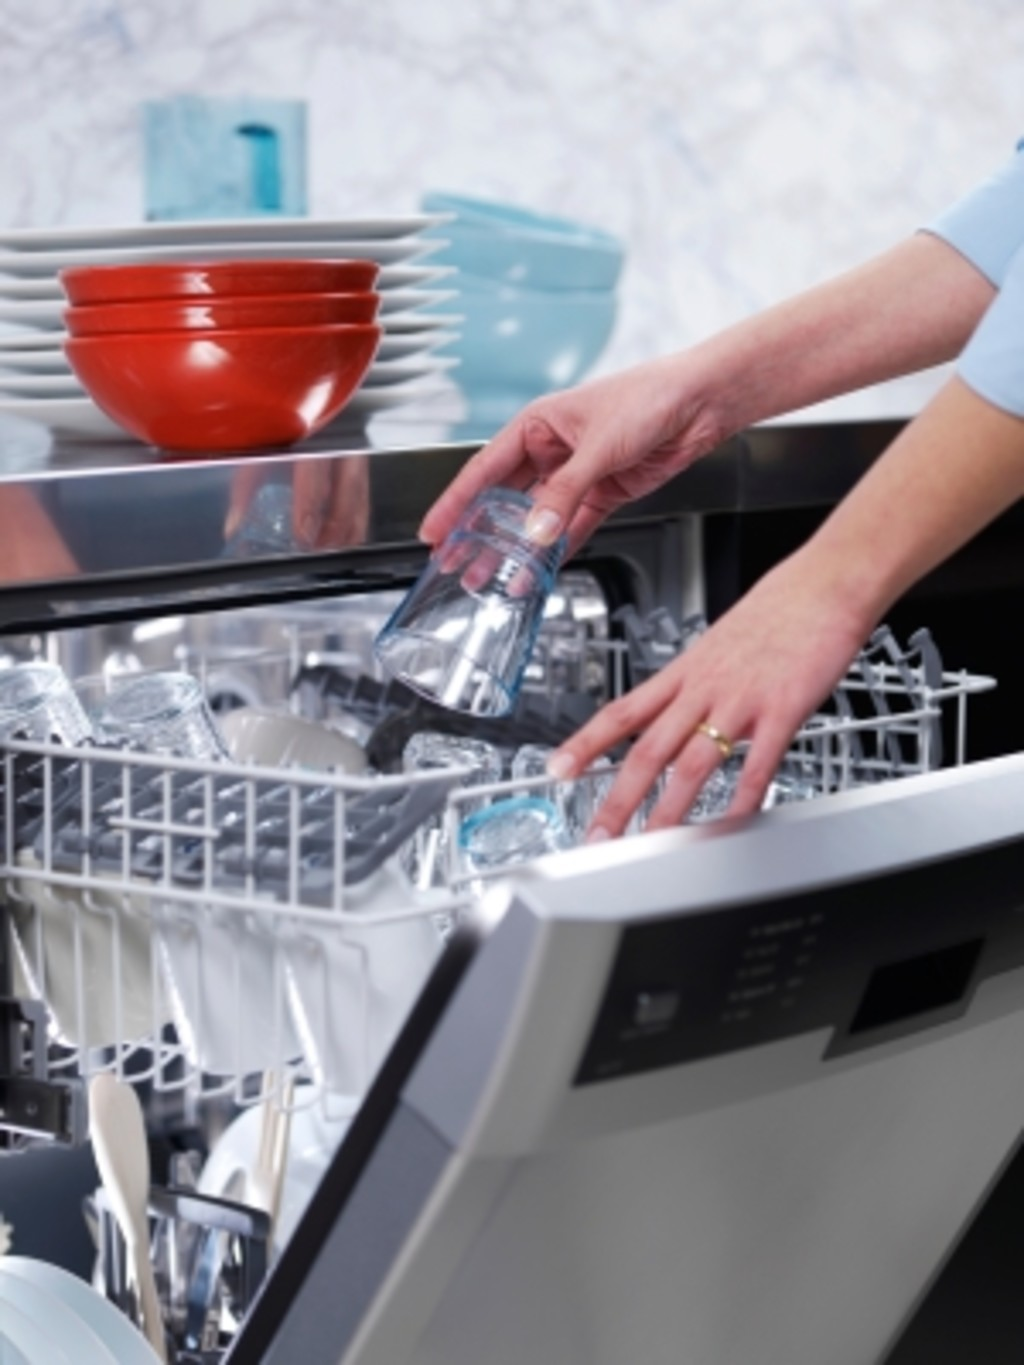 Dishwasher Repair - Cherry Hill NJ - First Stop Appliance